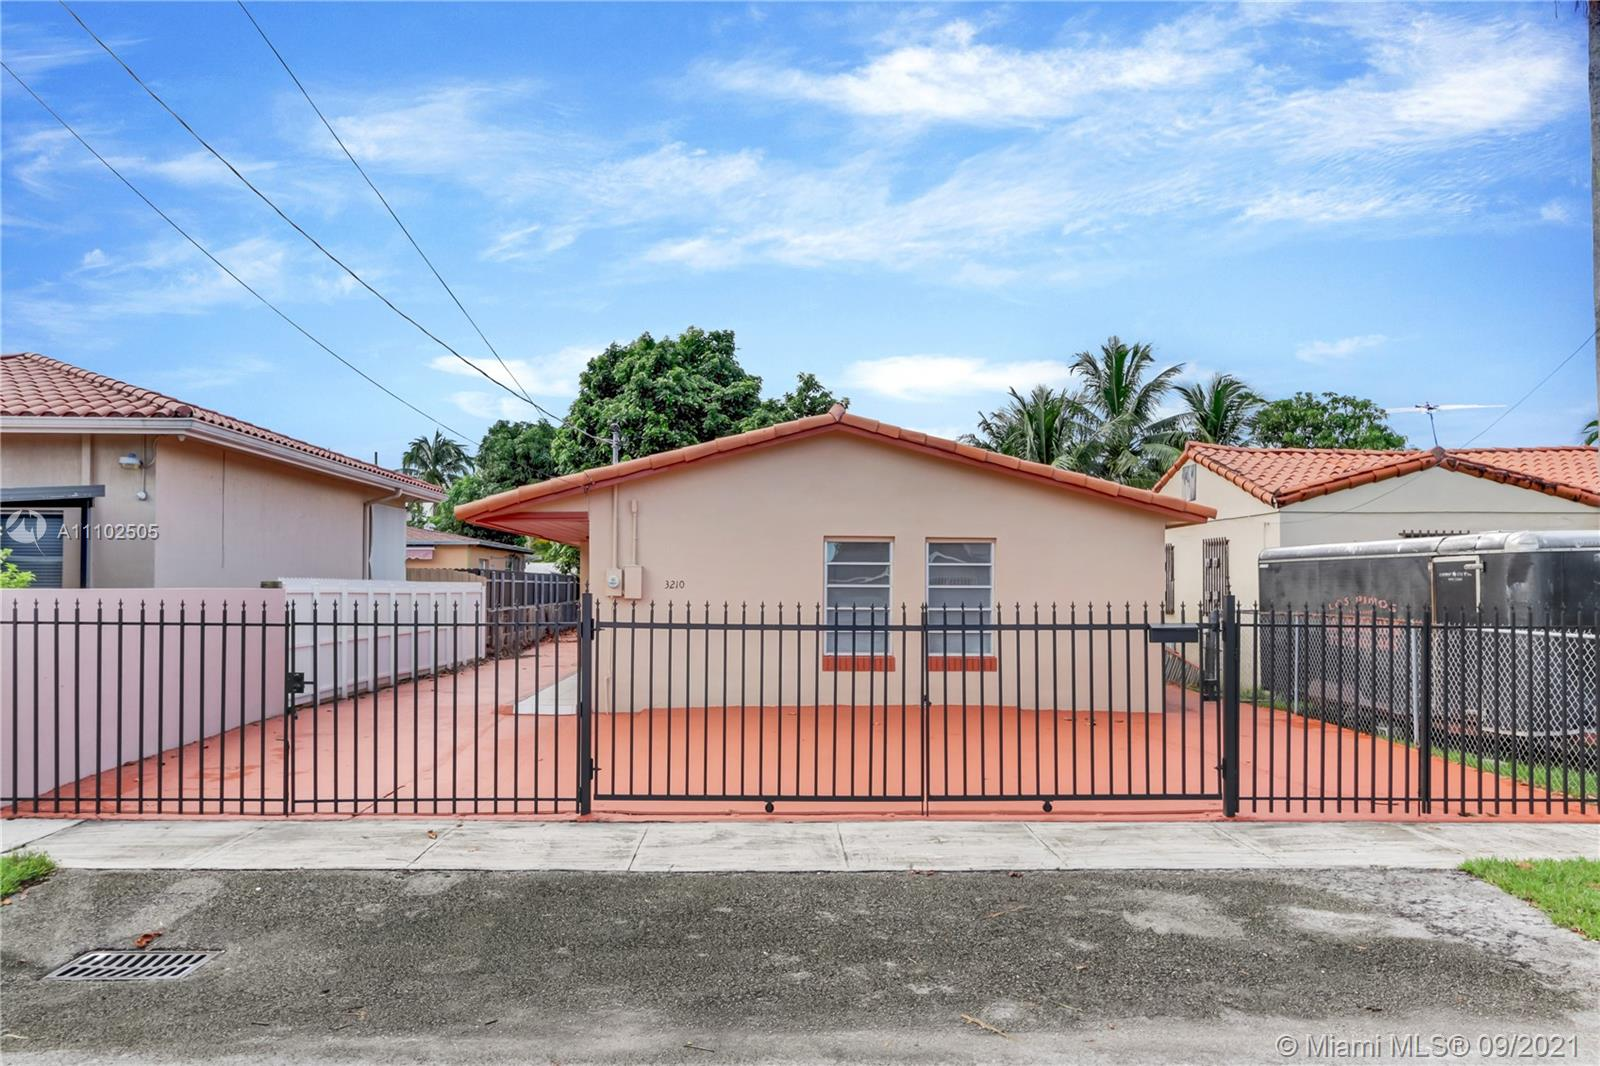 Single Family Home,For Sale,3210 NW 19th St, Miami, Florida 33125,Brickell,realty,broker,condos near me